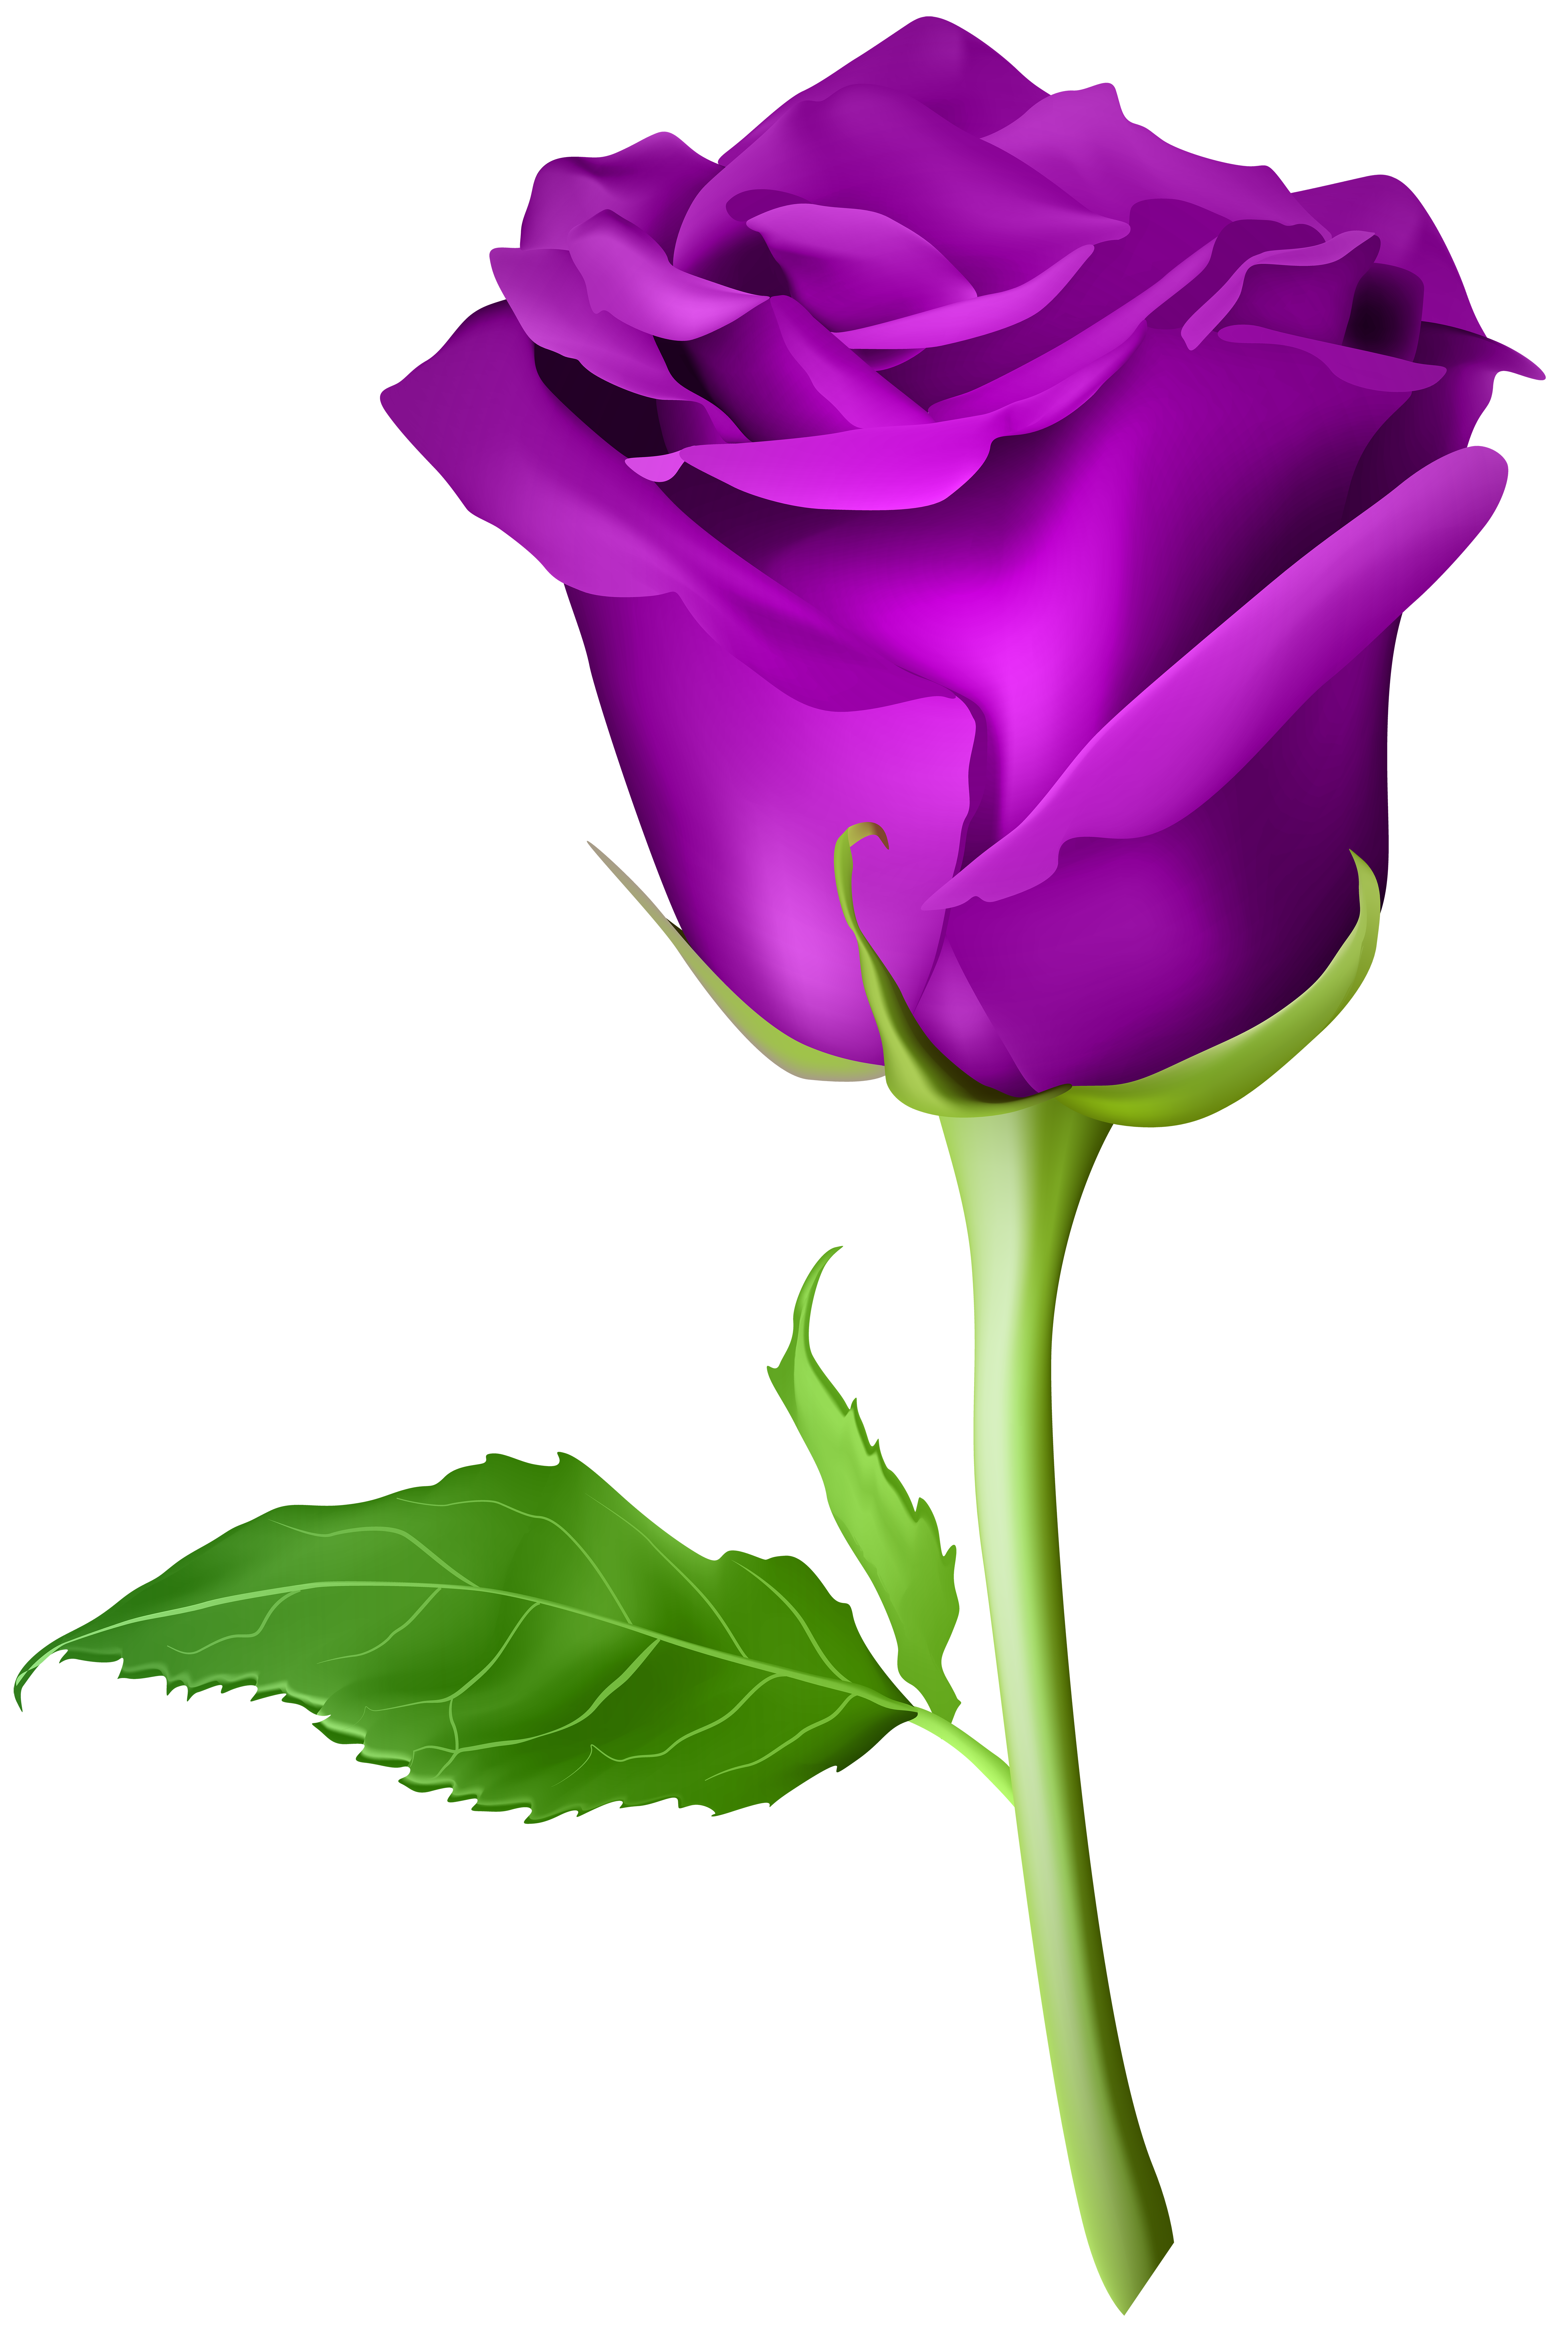 Violet Rose Png - Rose Purple Transparent PNG Clip Art Image​ | Gallery Yopriceville ...